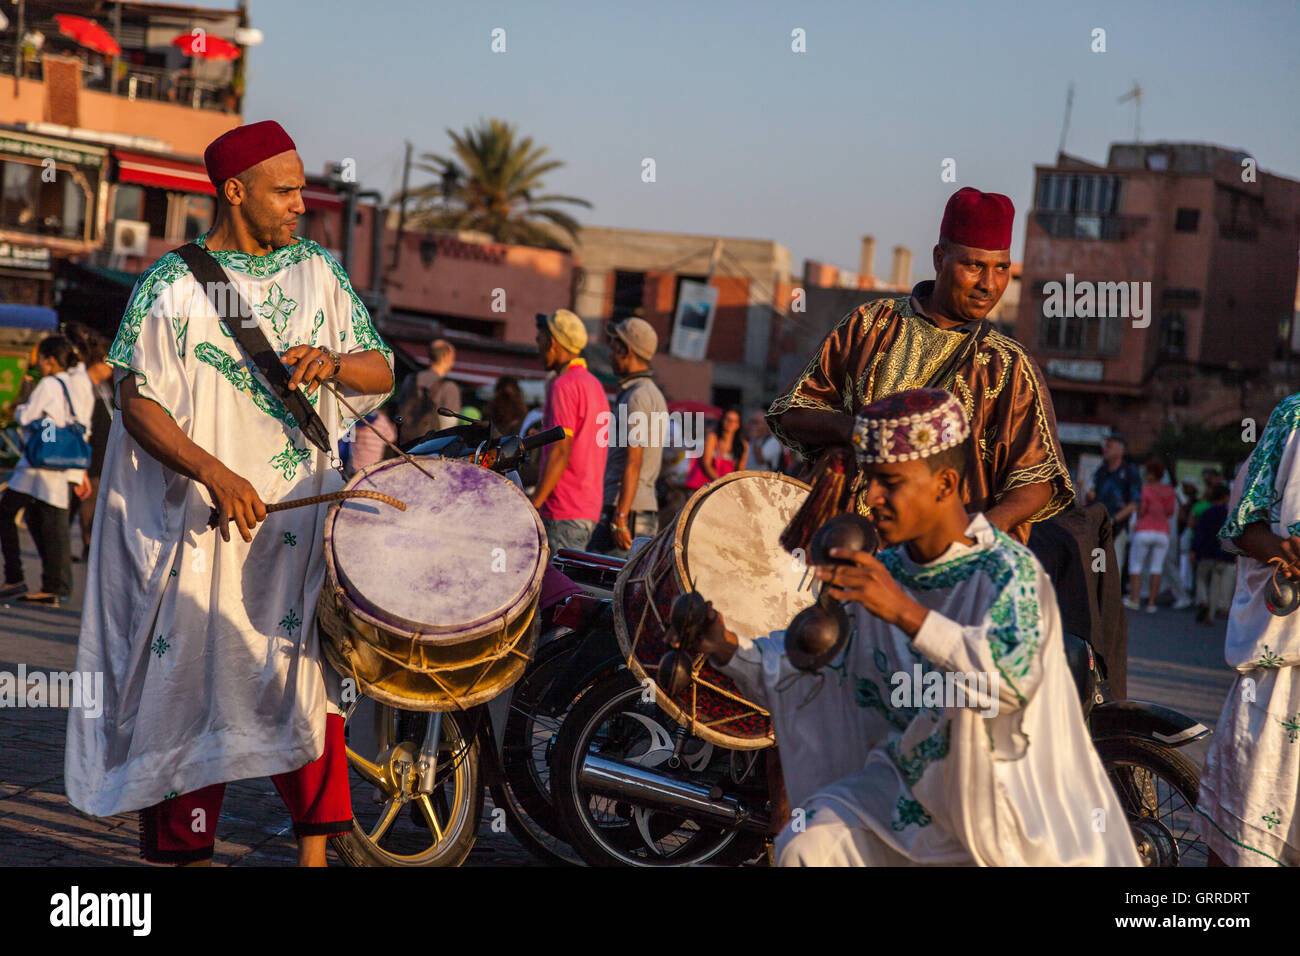 Jamaa el Fna is a square and market place in Marrakesh's medina quarter (old city) used by locals and tourists. Stock Photo